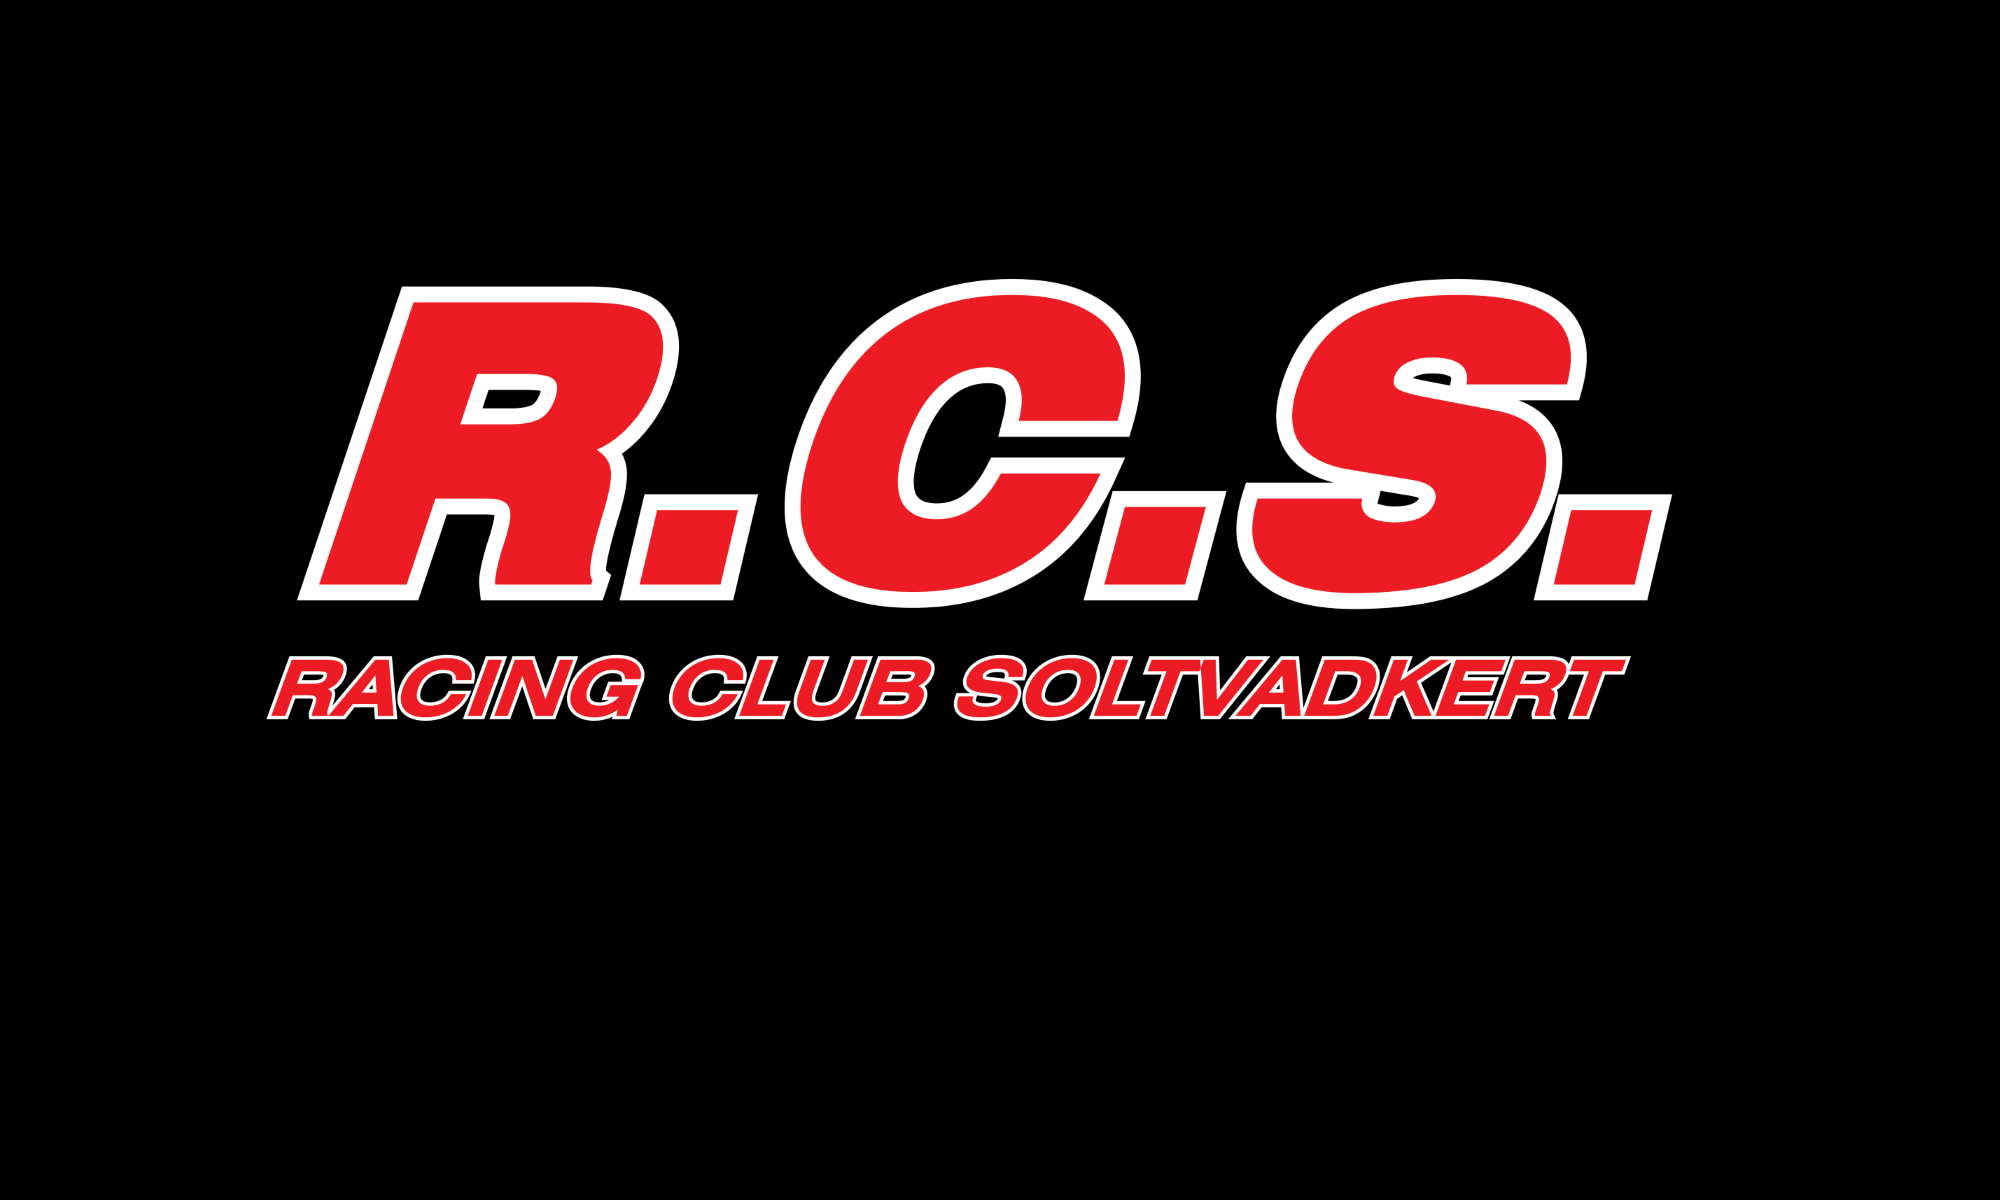 Racing Club Soltvadkert